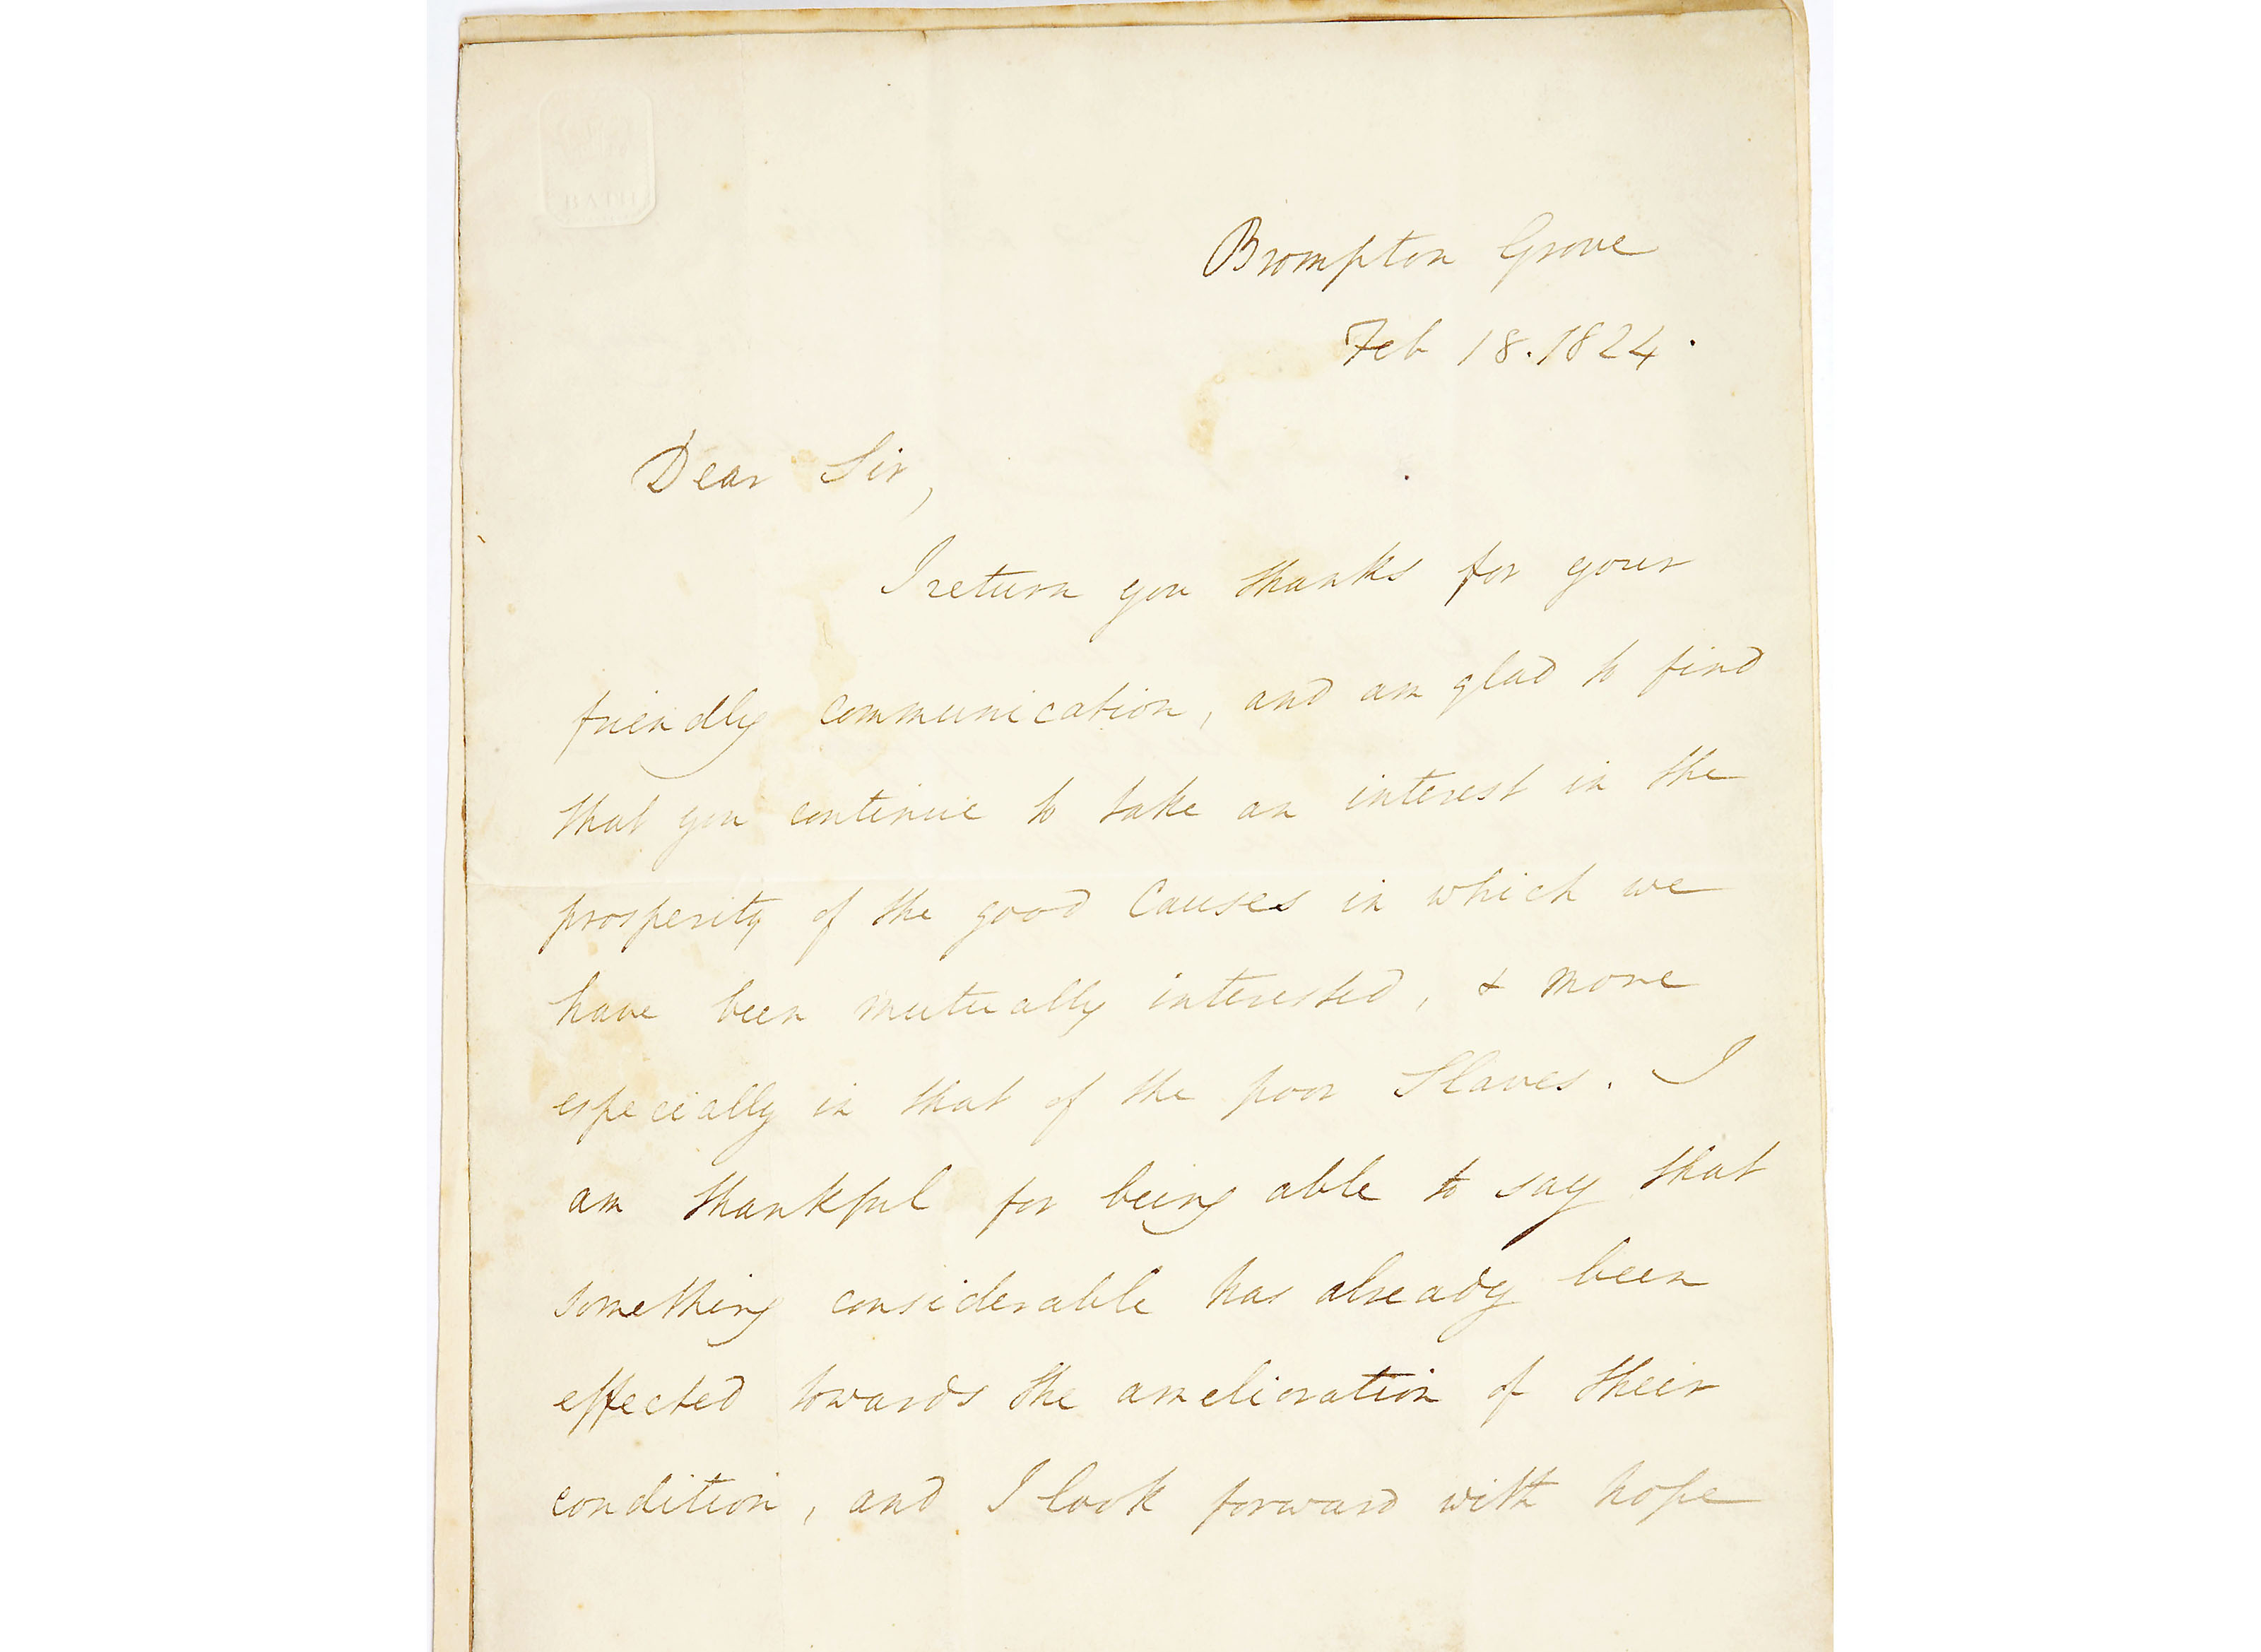 Letter from William Wilberforce to the Reverend George Marsden